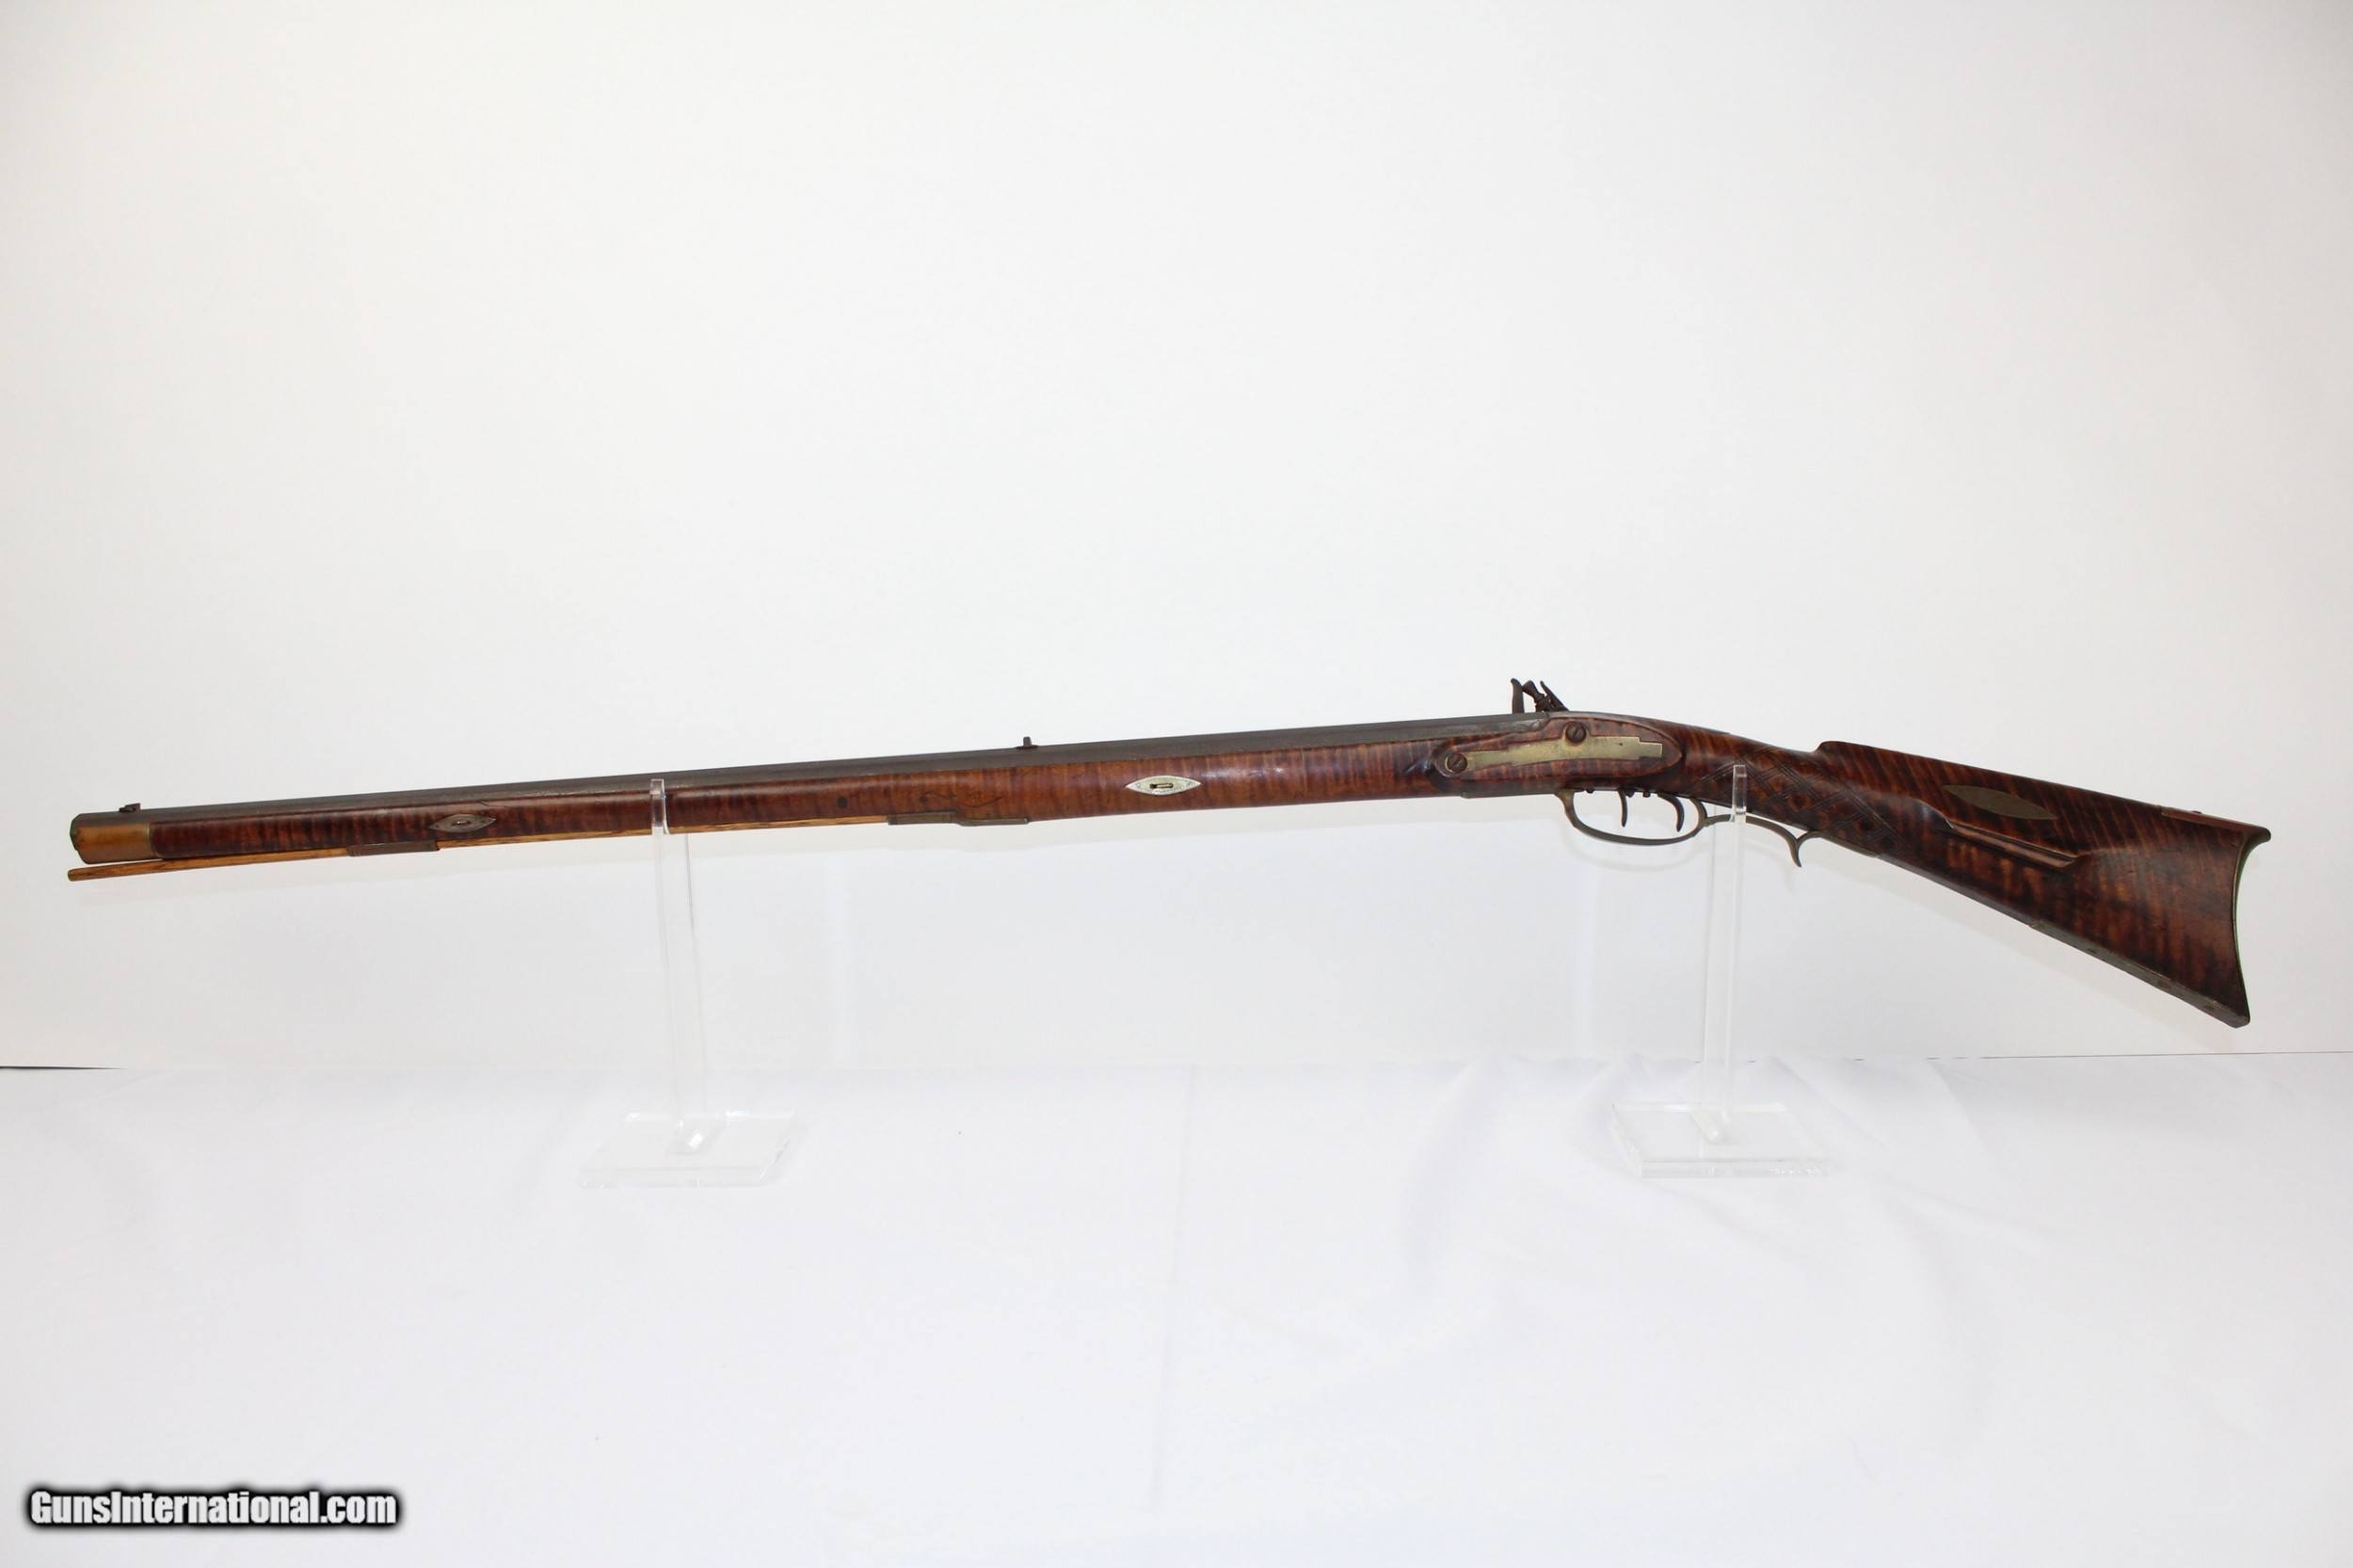 Pa State Inspection >> LANCASTER Antique HENRY GIBBS Flintlock PA Rifle